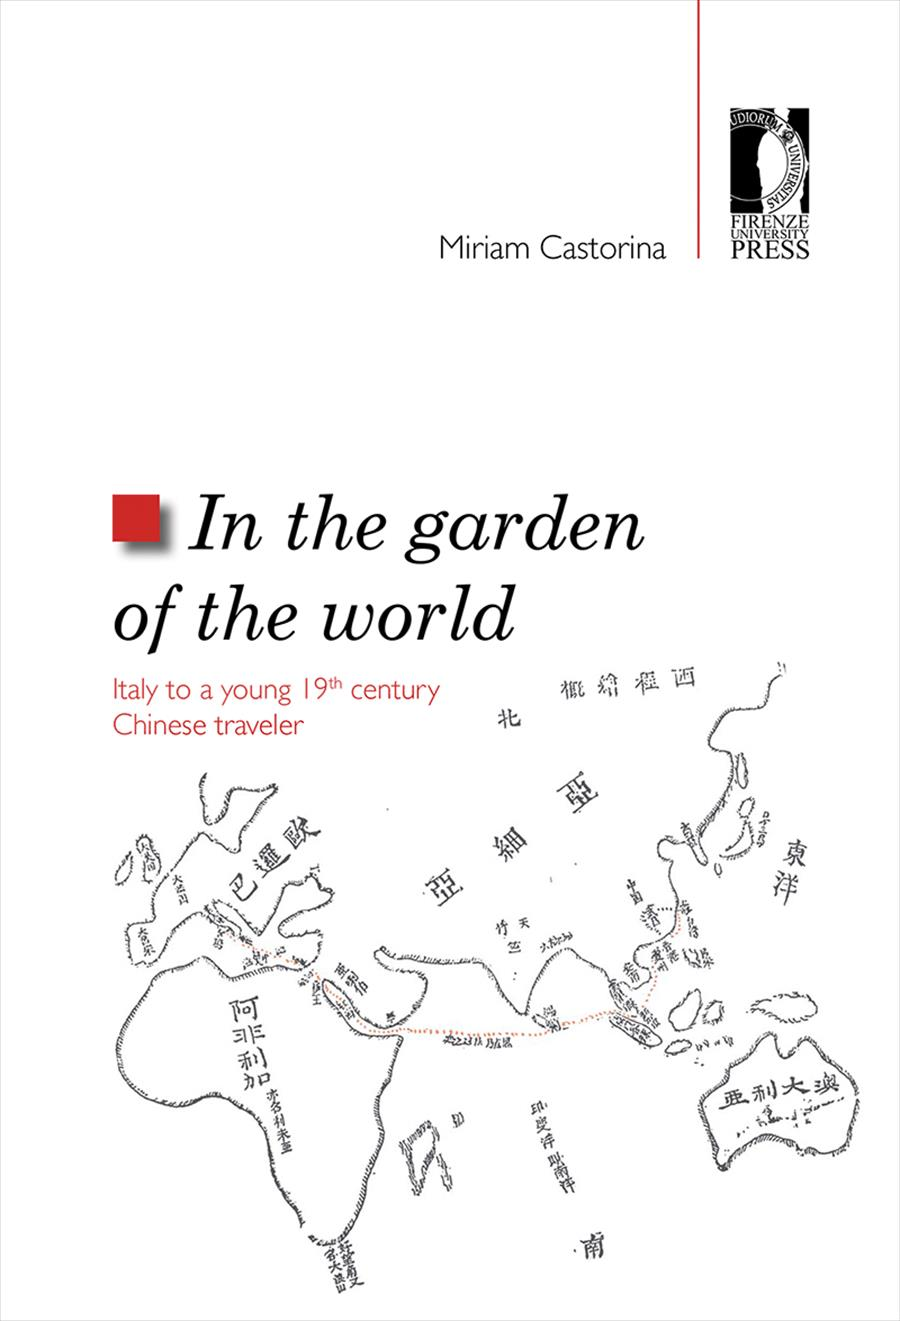 In the garden of the world